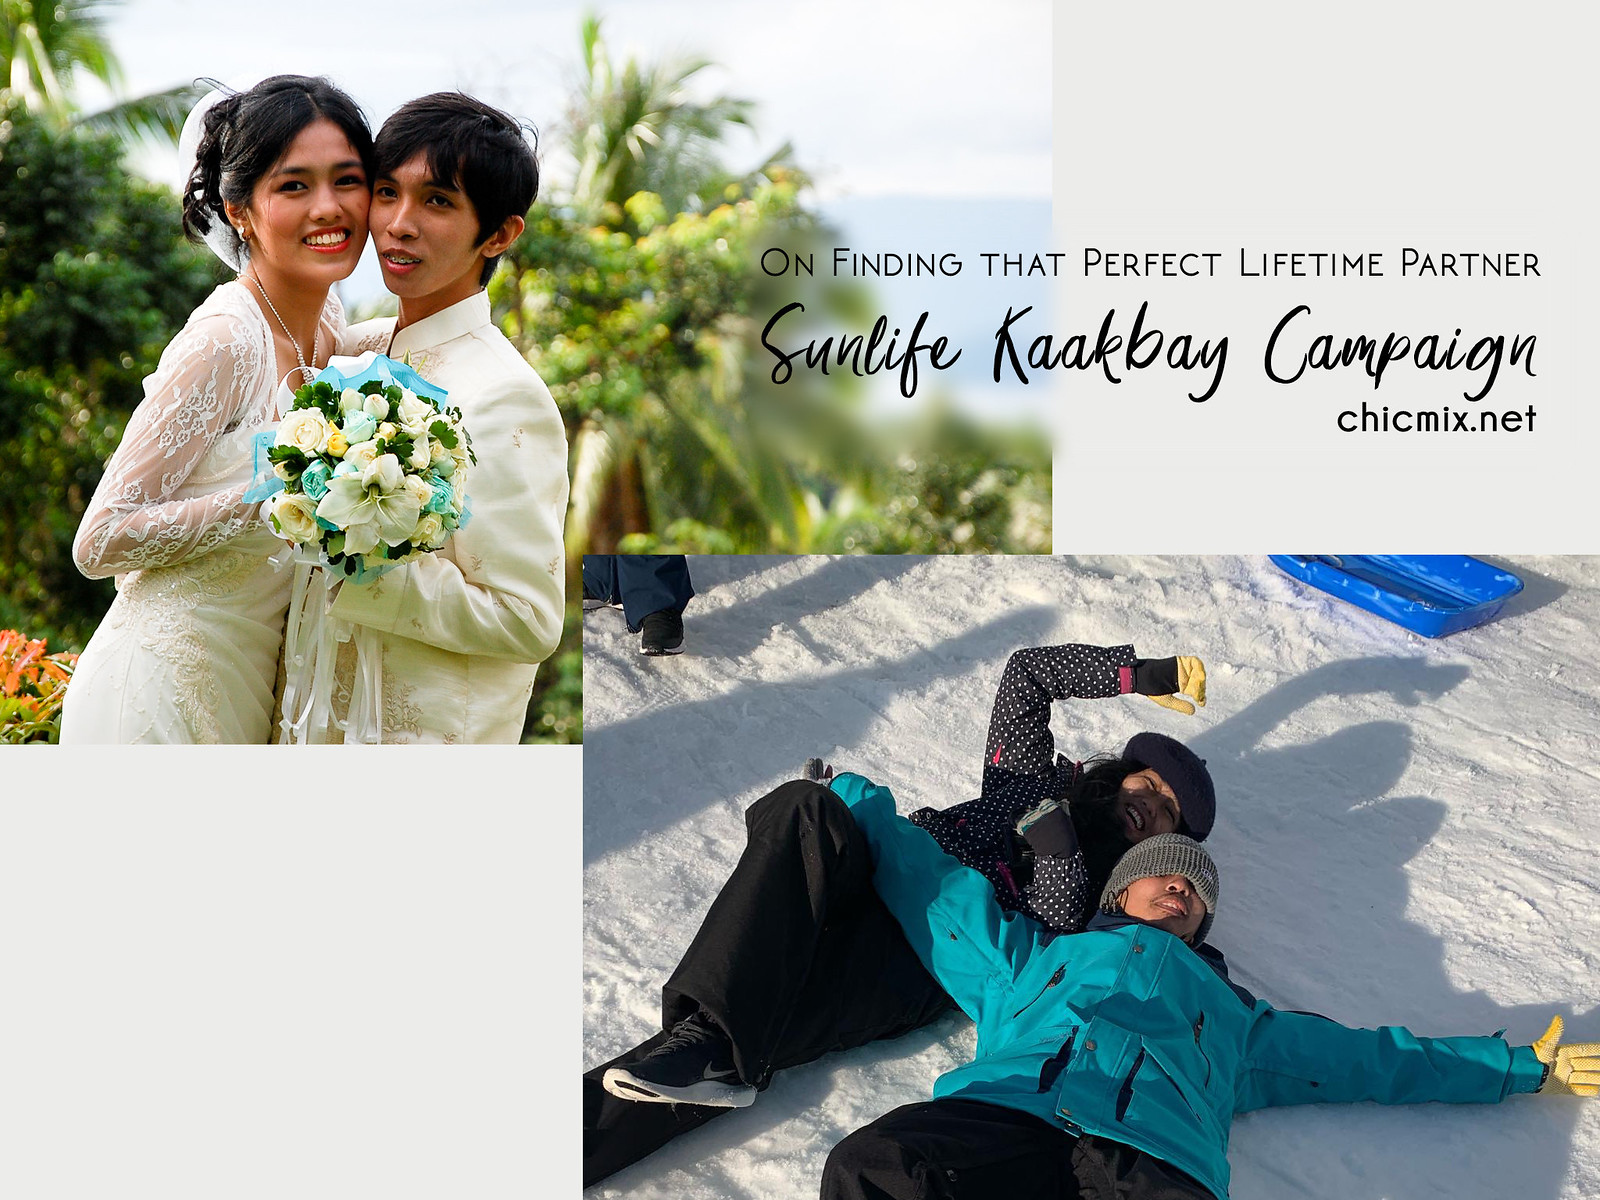 On Finding that Perfect Lifetime Partner | Sunlife Kaakbay Campaign